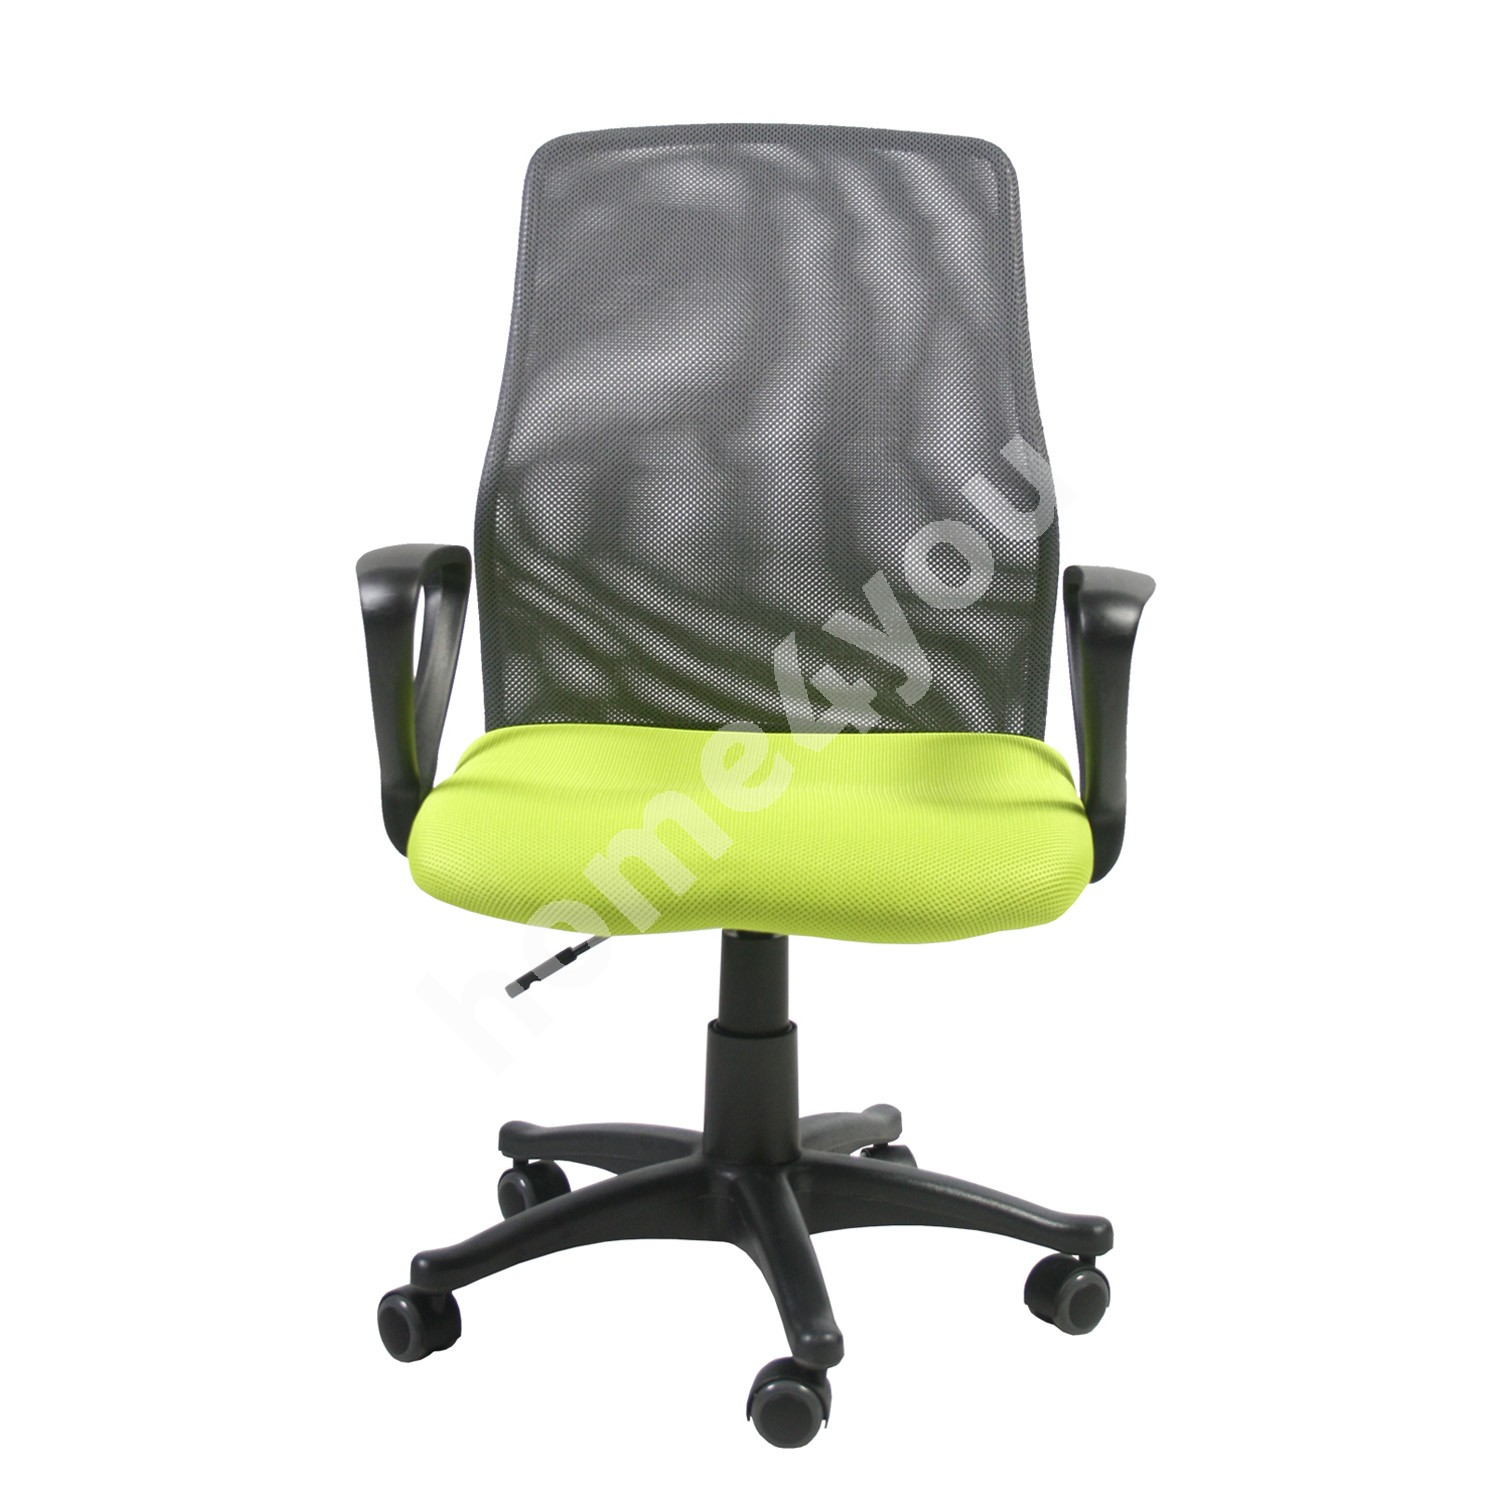 Task chair TREVISO 59xD58xH90-102cm, seat: fabric, color: green, back rest: mesh, color: grey